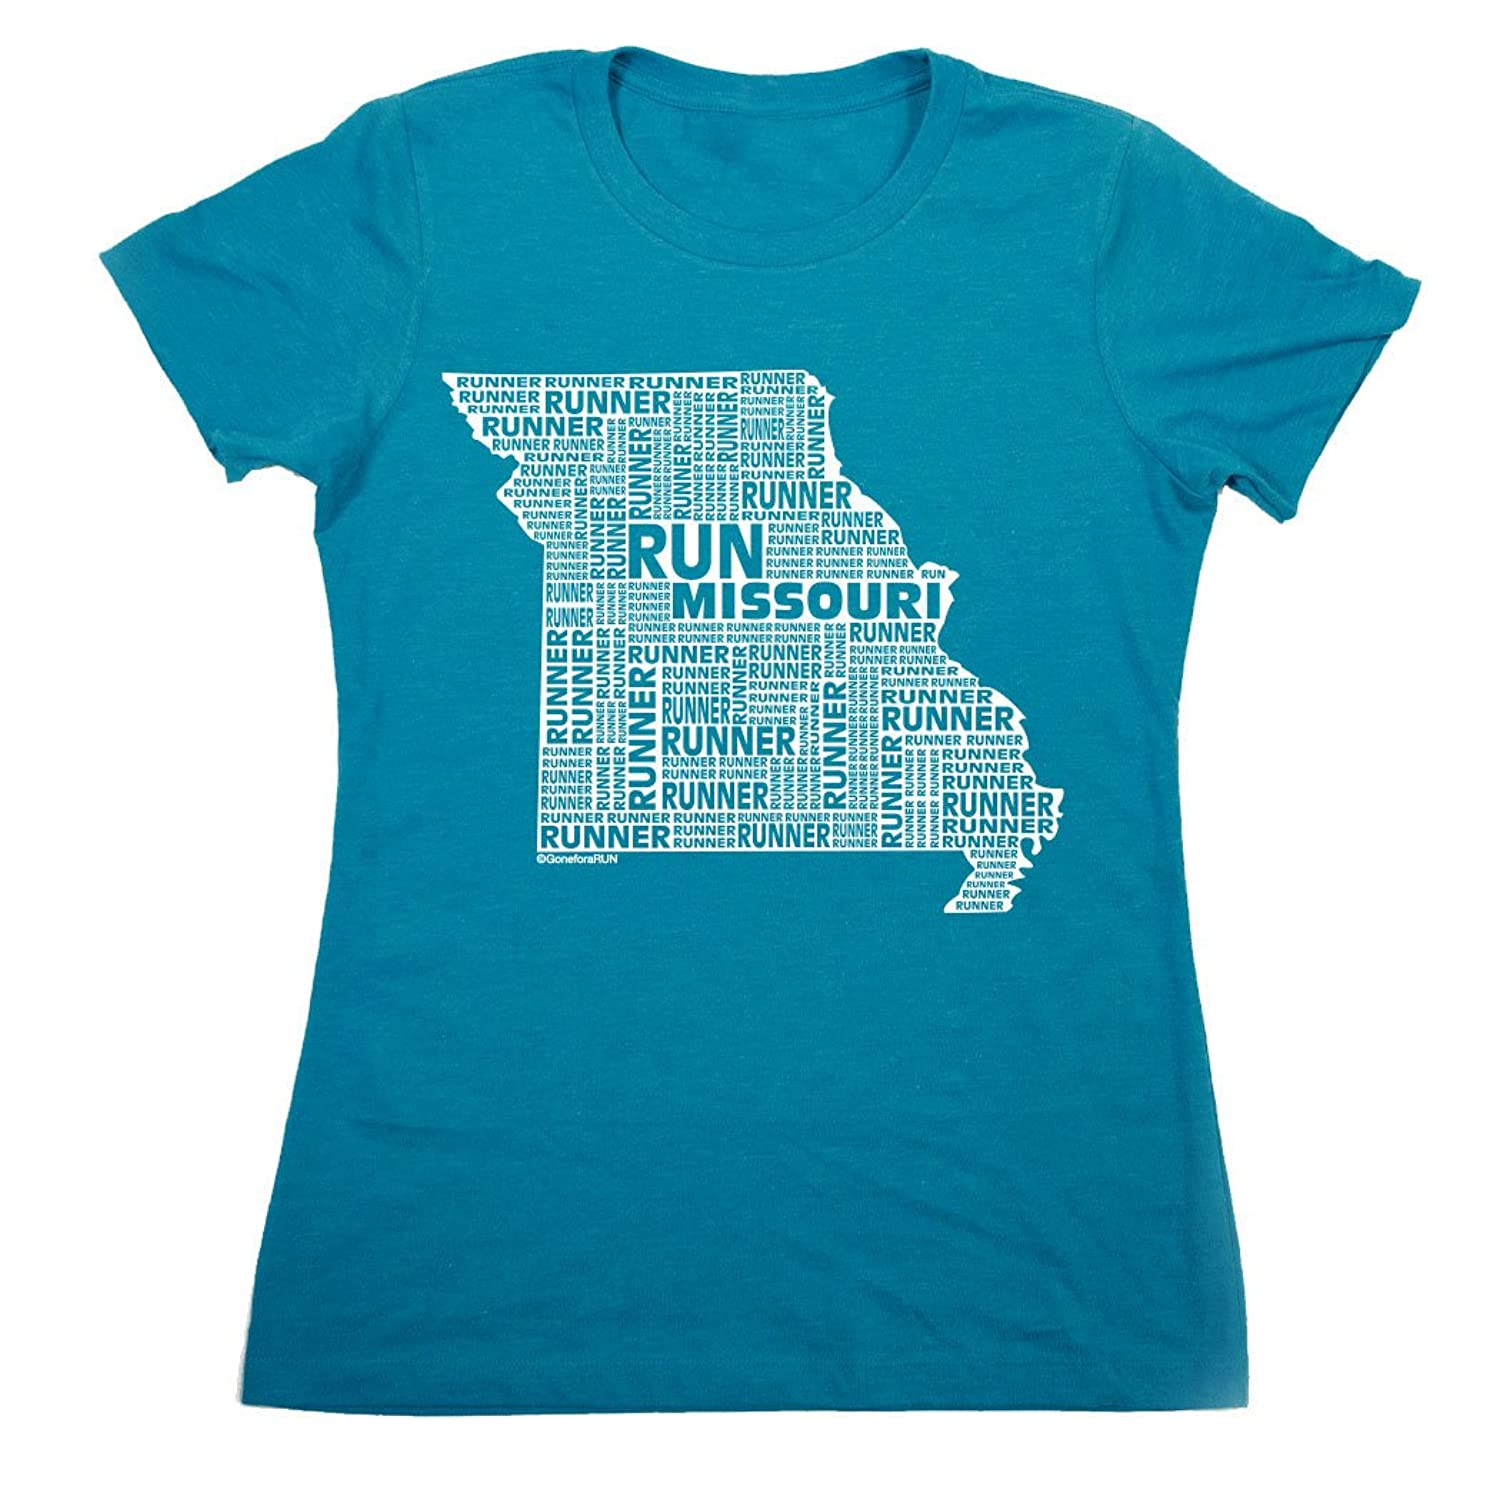 Womens Everyday Runners Tee - Missouri State Runner